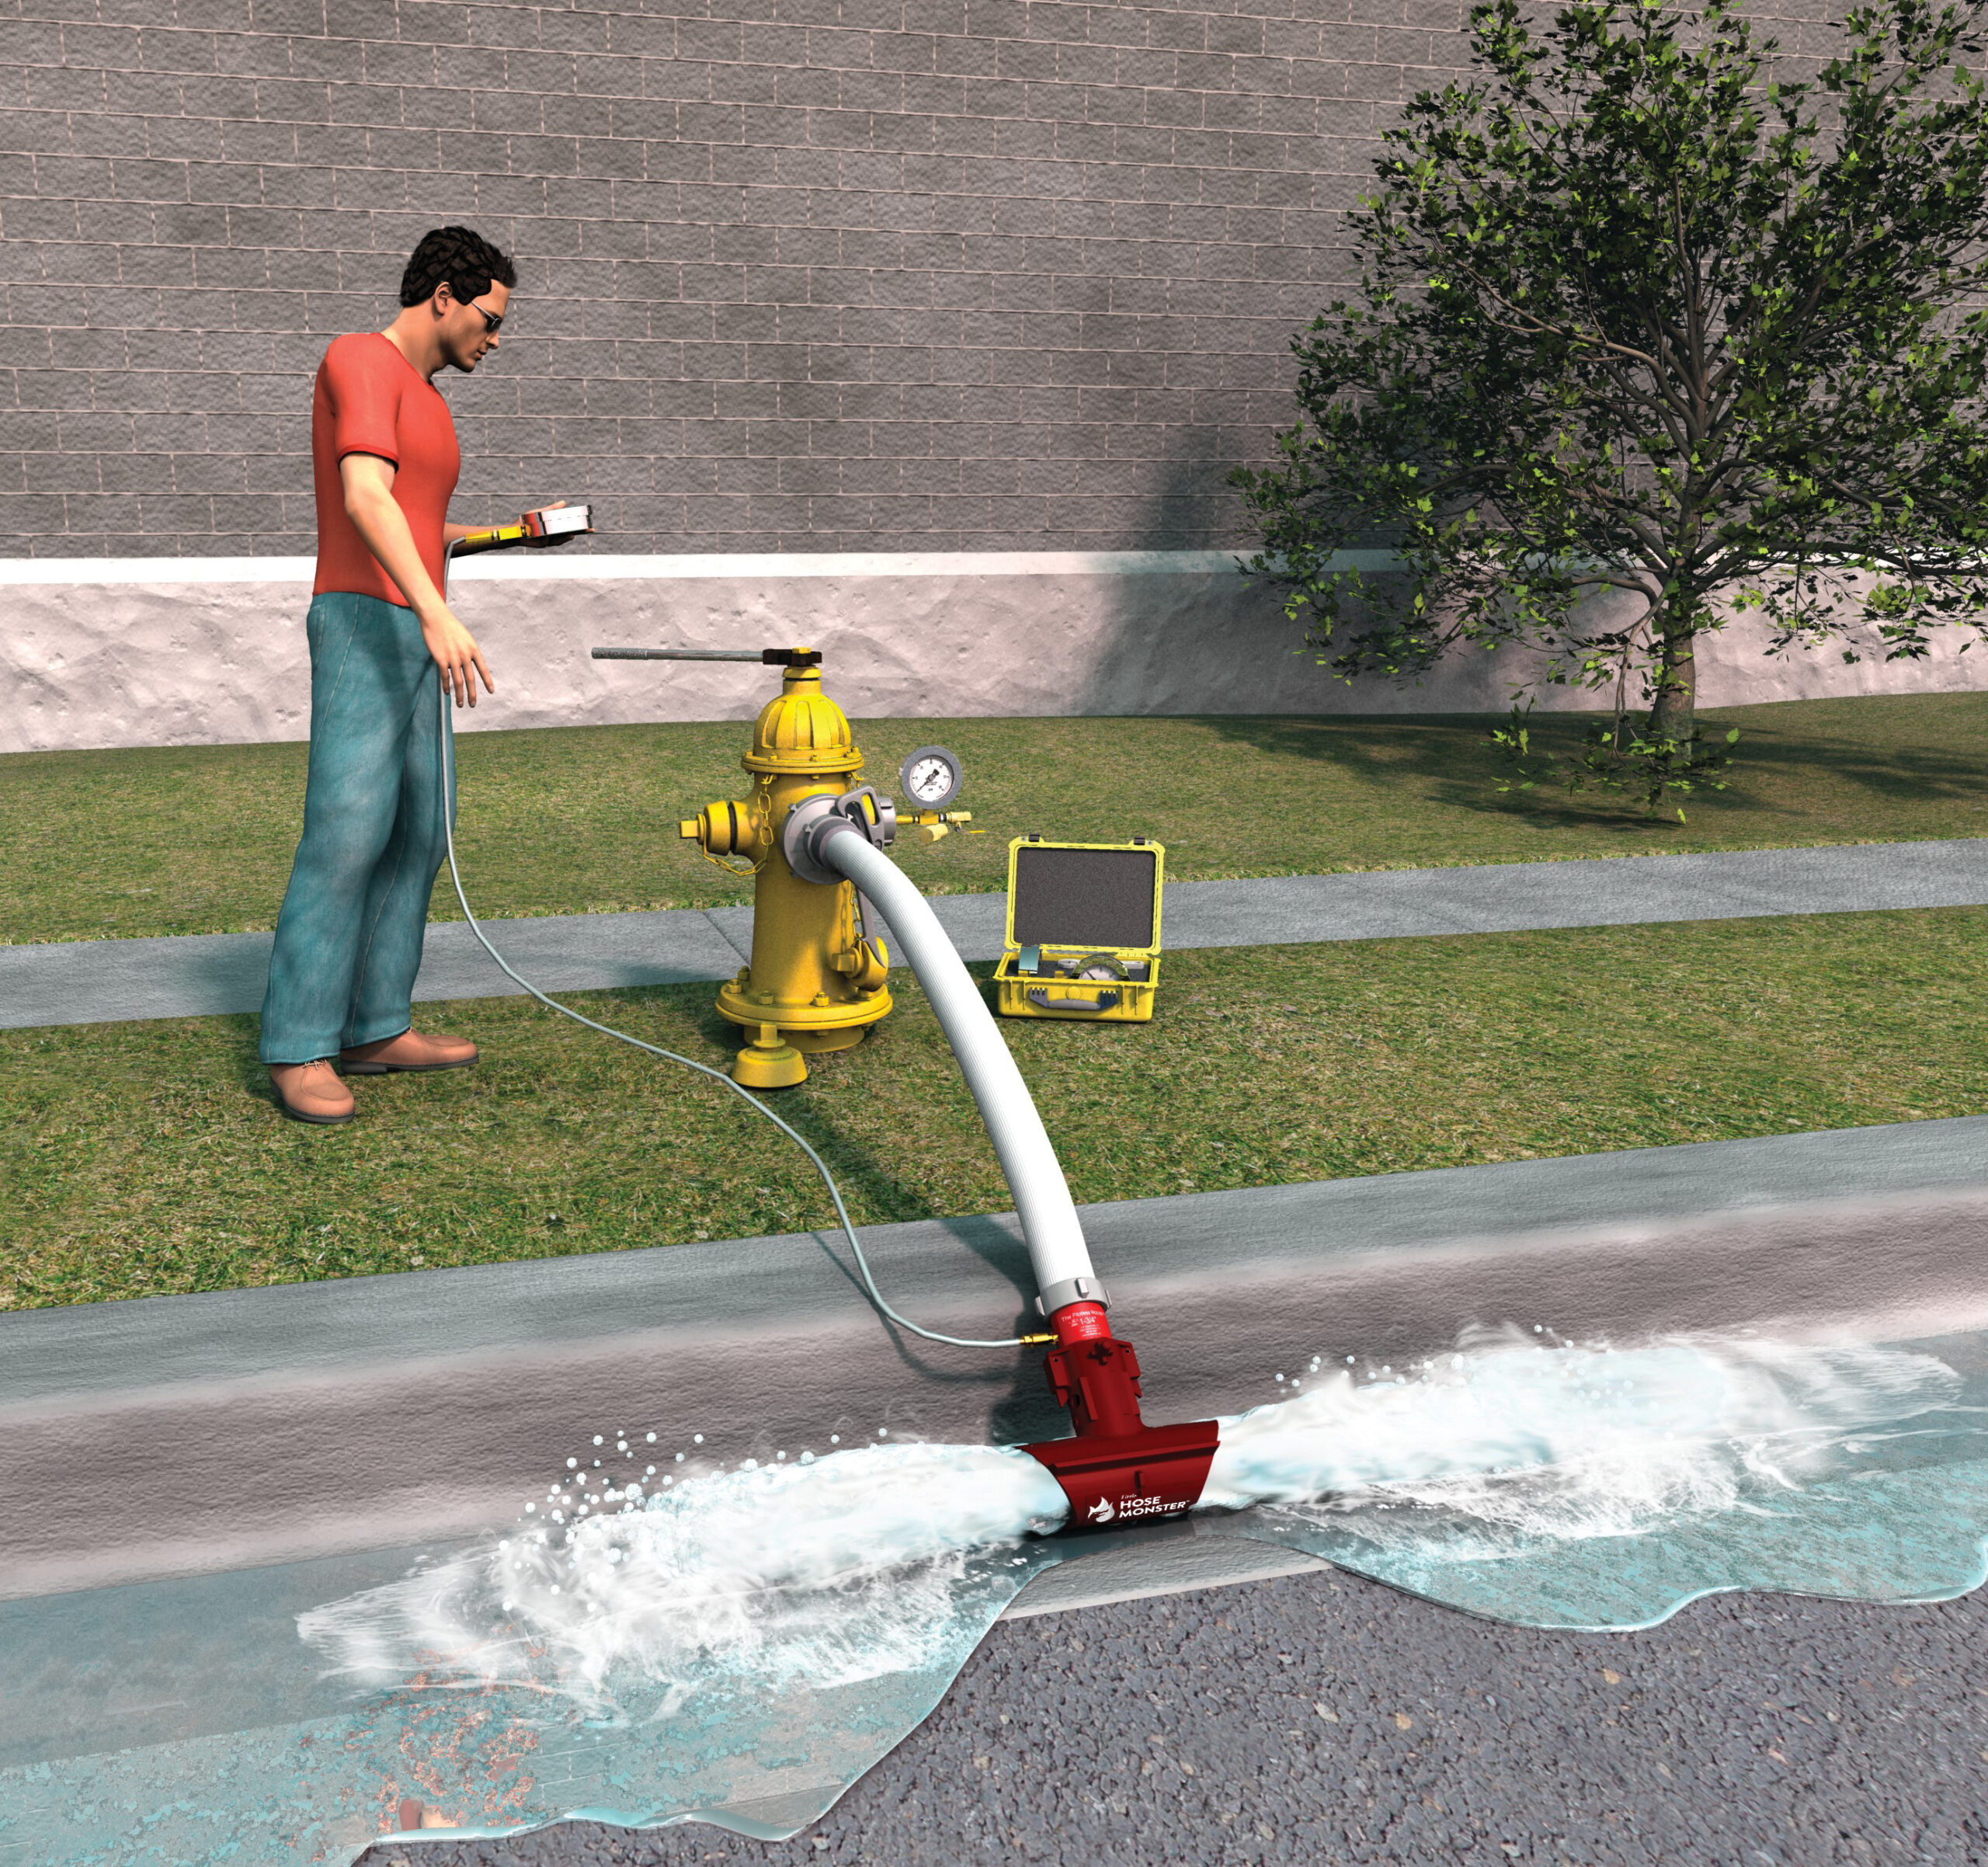 Hose Monster's Little Hose Monster can help you test fire hydrant water pressure to provide accurate data.